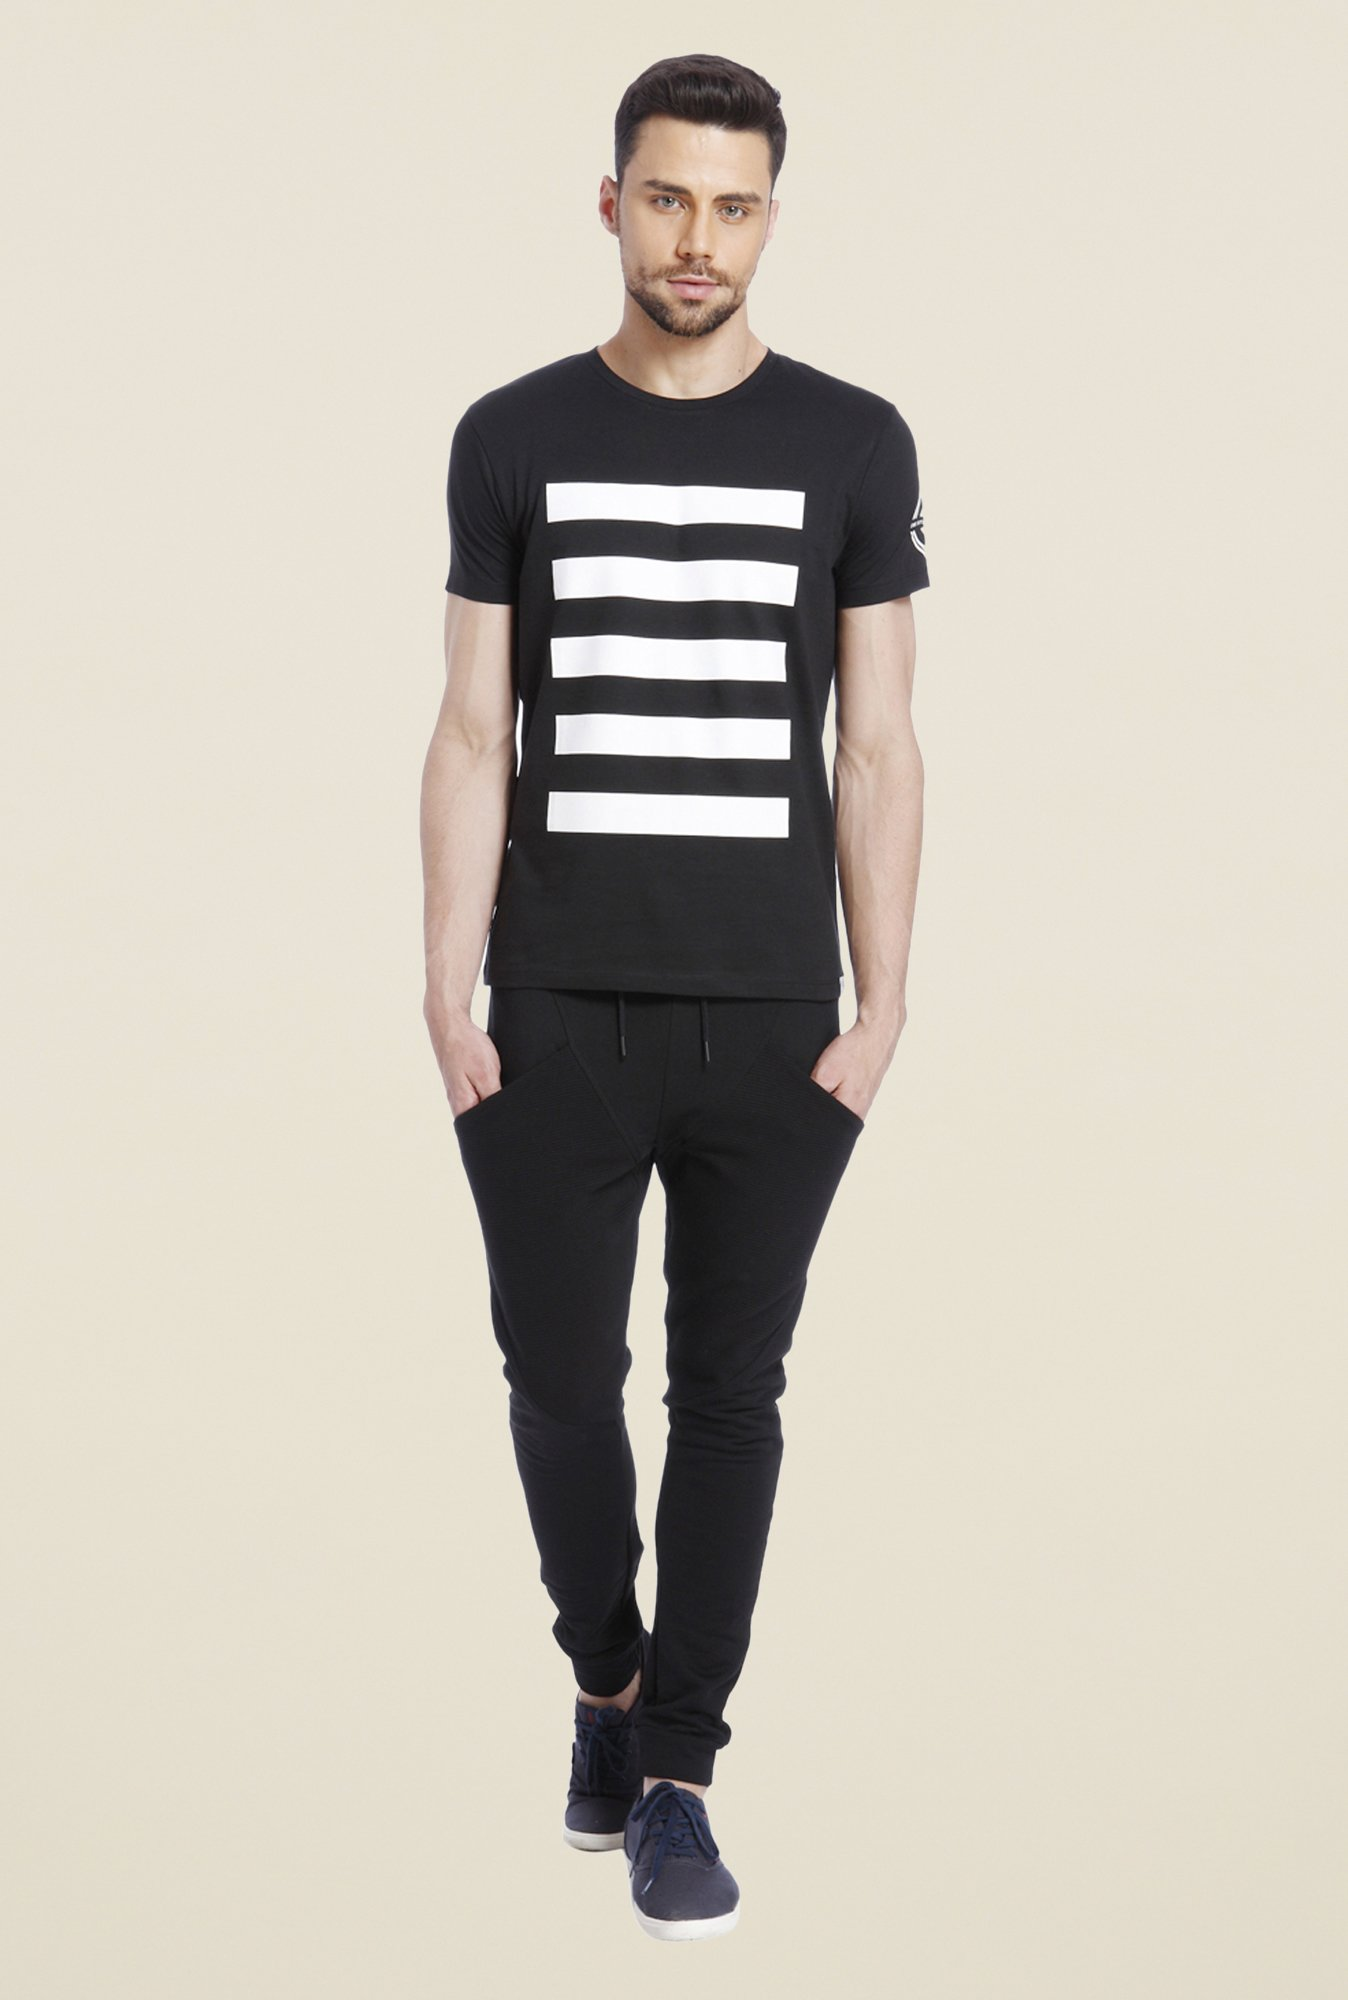 Jack & Jones Black Graphic Print Crew Neck T Shirt